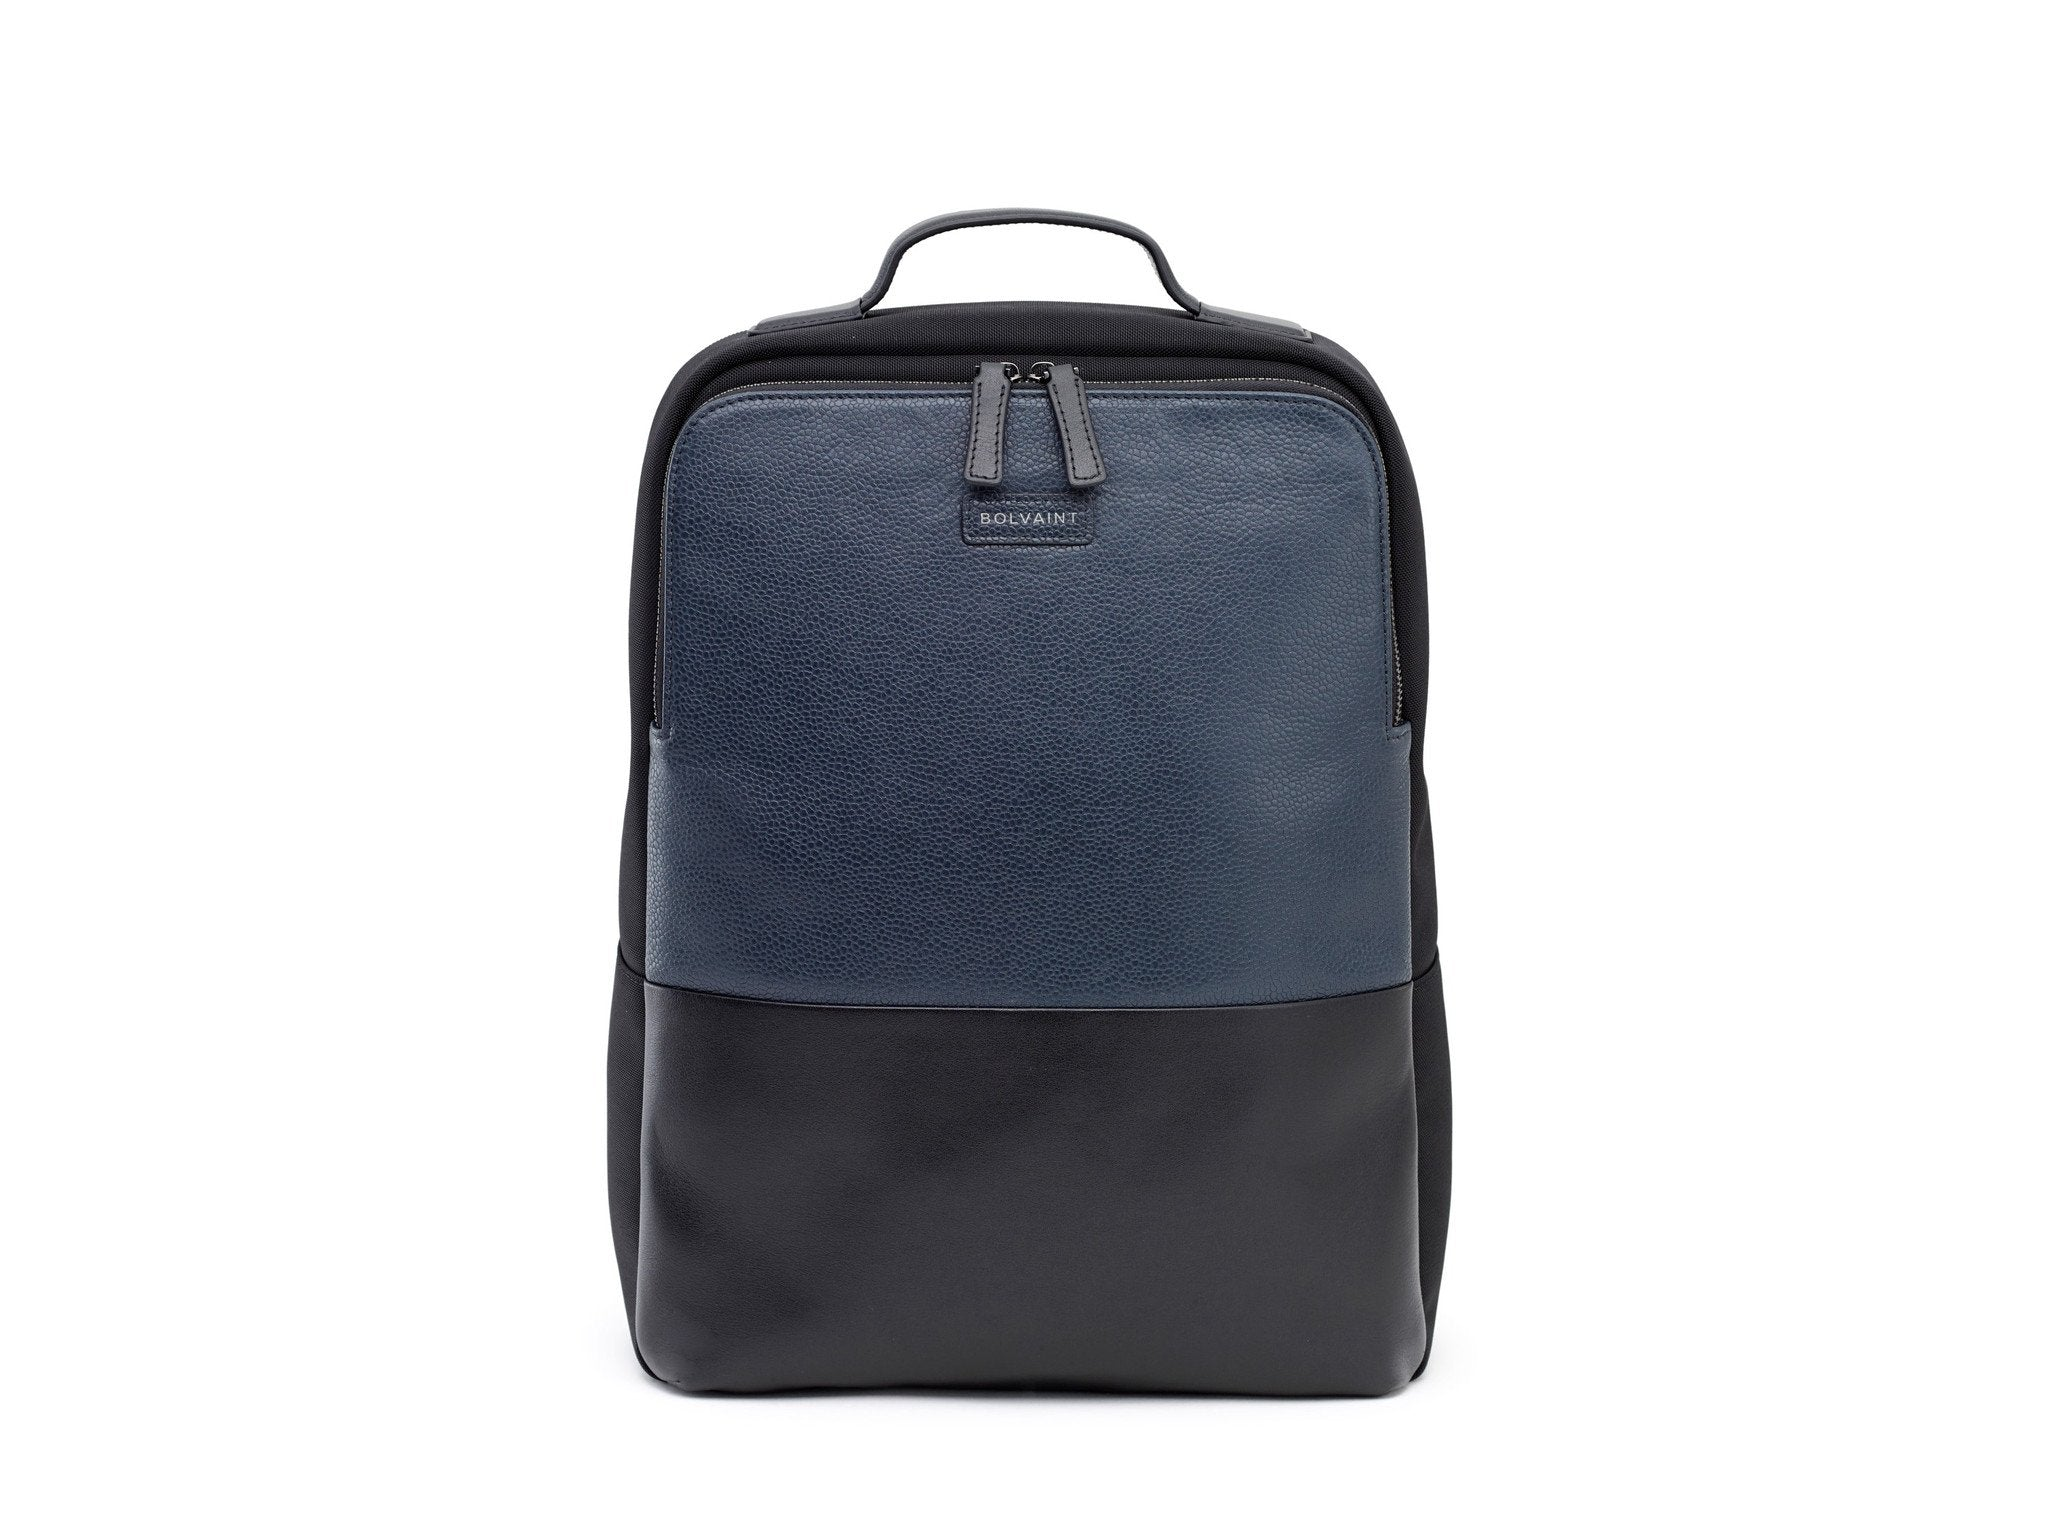 Bolvaint The Giles Backpack